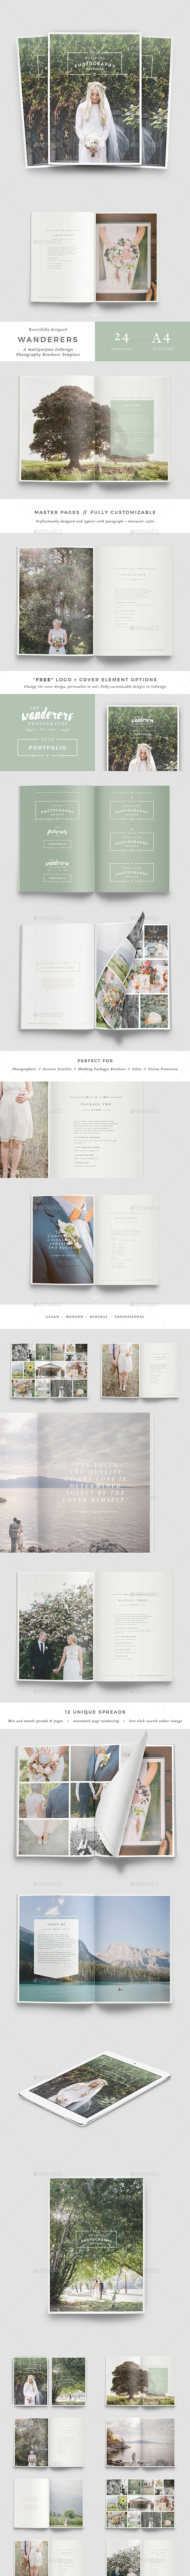 Wedding Photography Brochure - Brochures Print